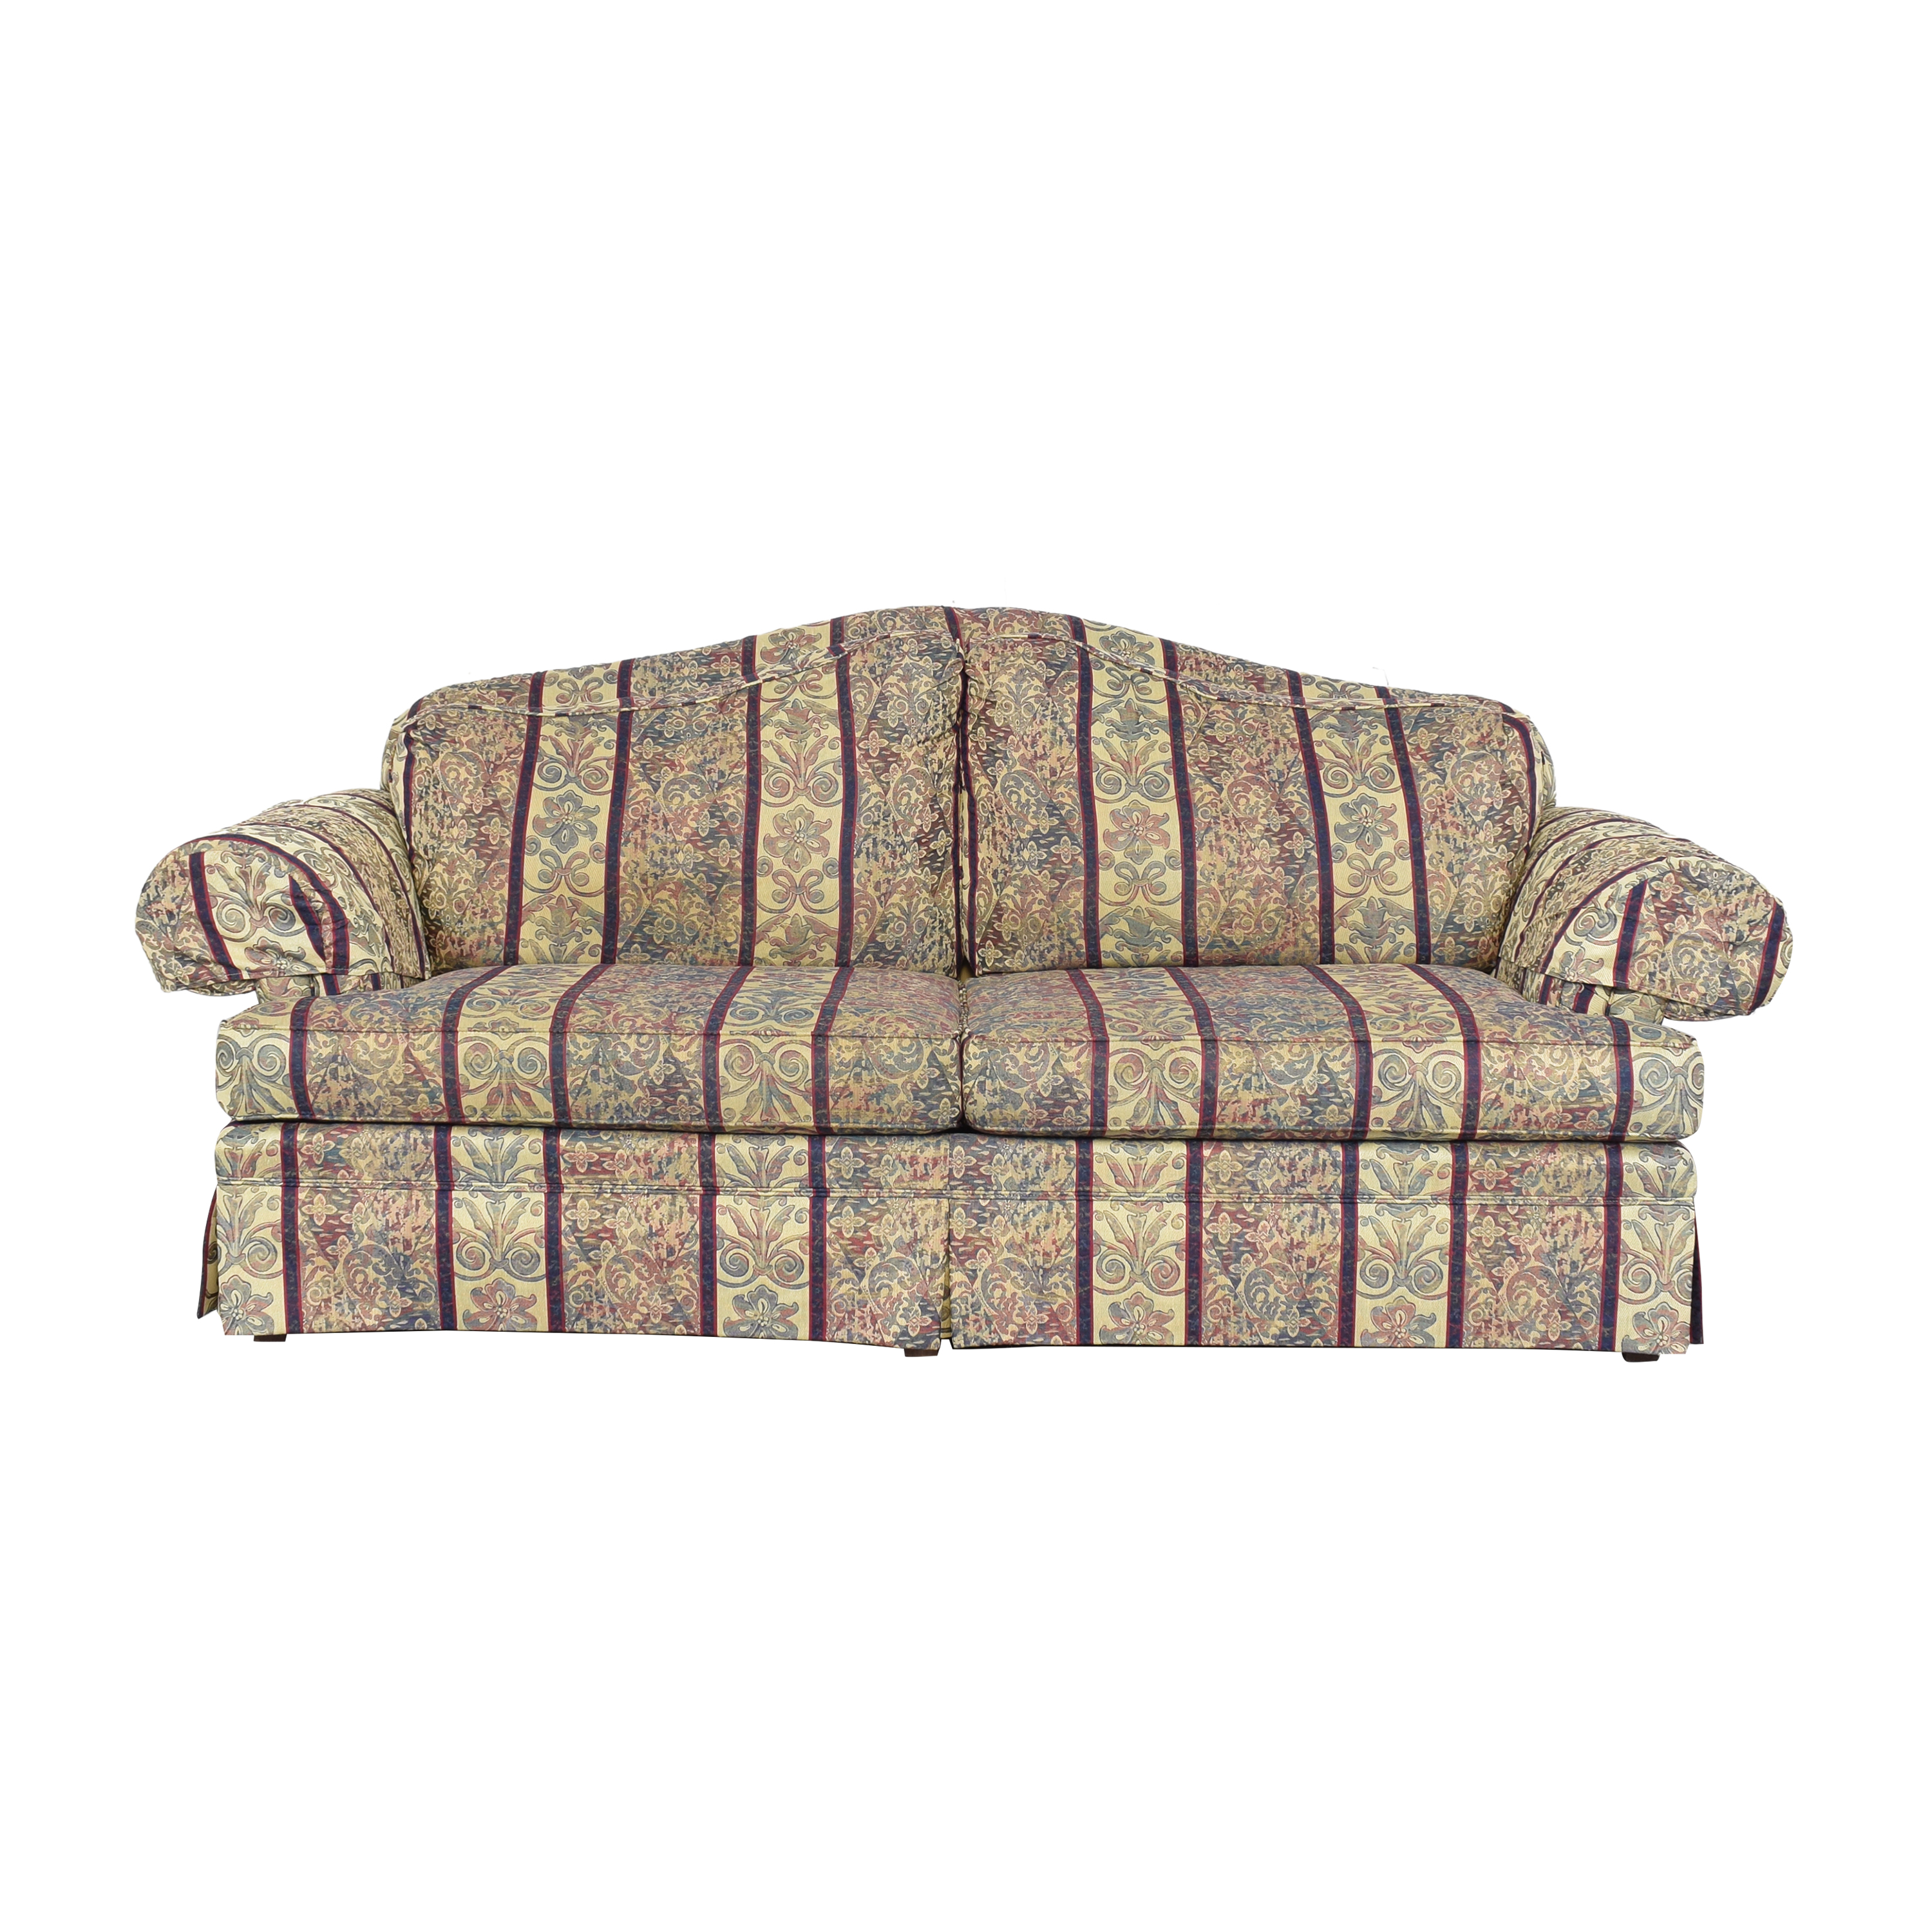 Broyhill Furniture Broyhill Skirted Sofa for sale